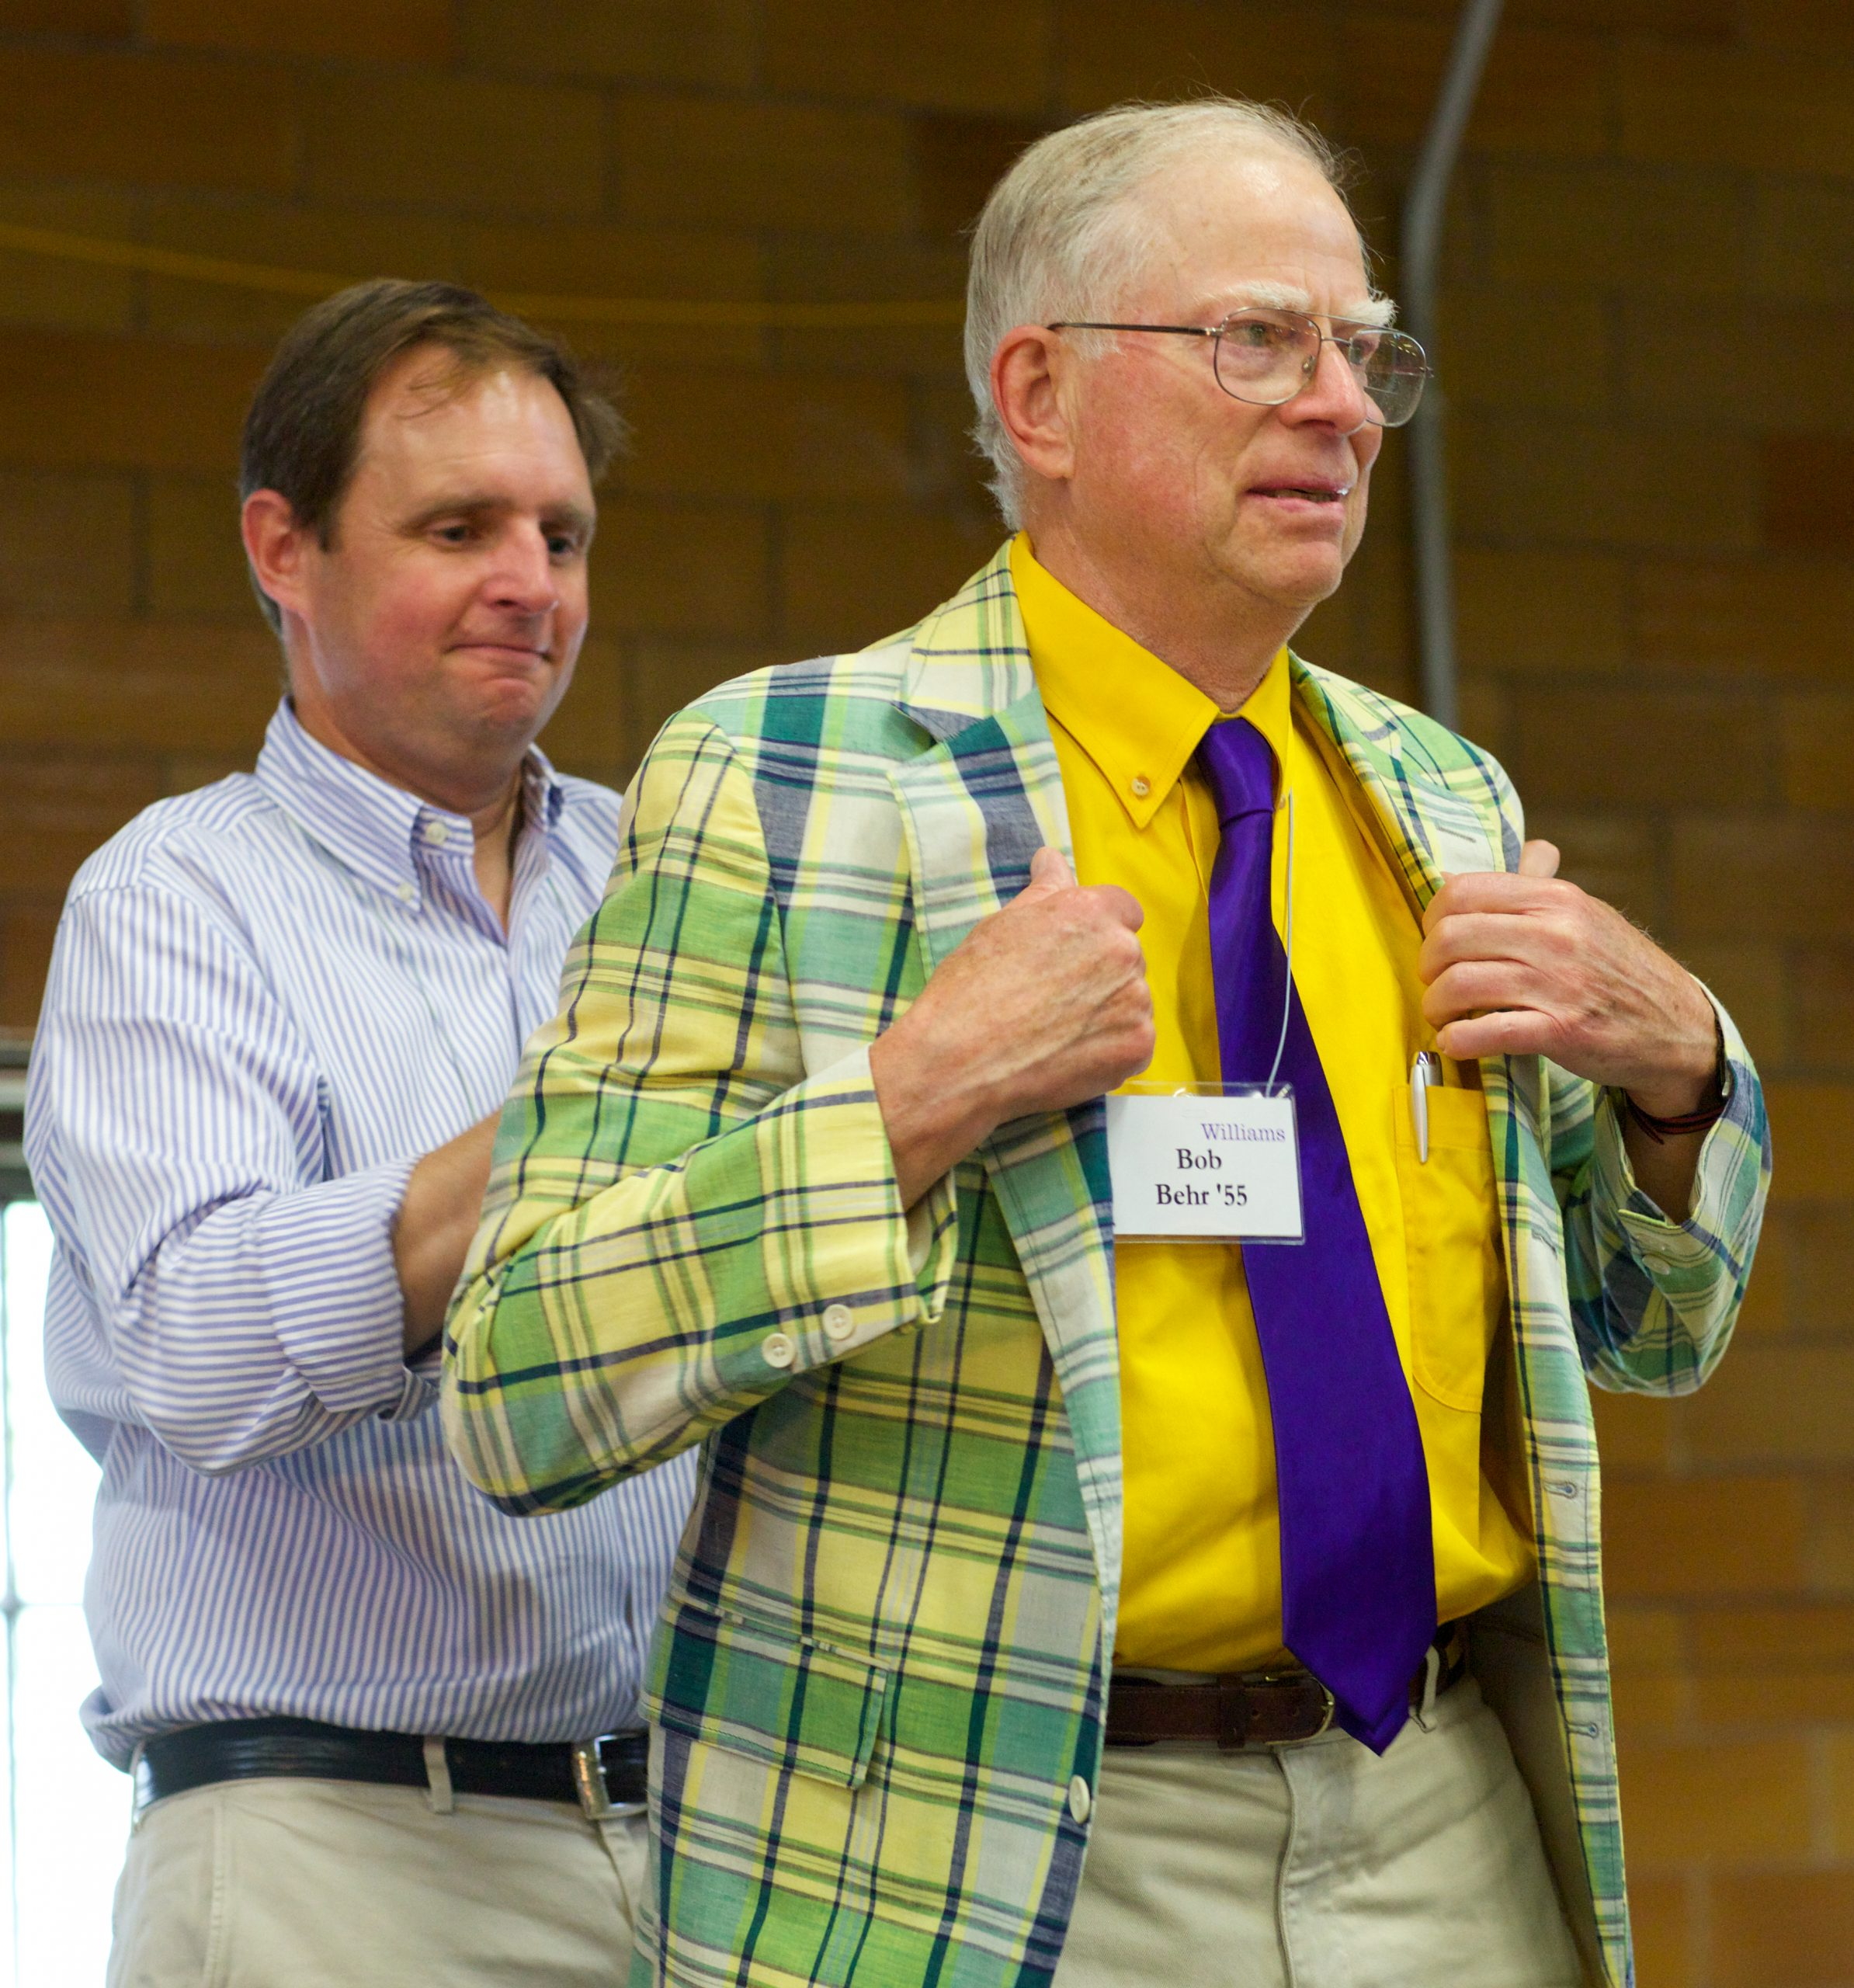 Bob Behr '55 receiving the Joseph's Coat Award